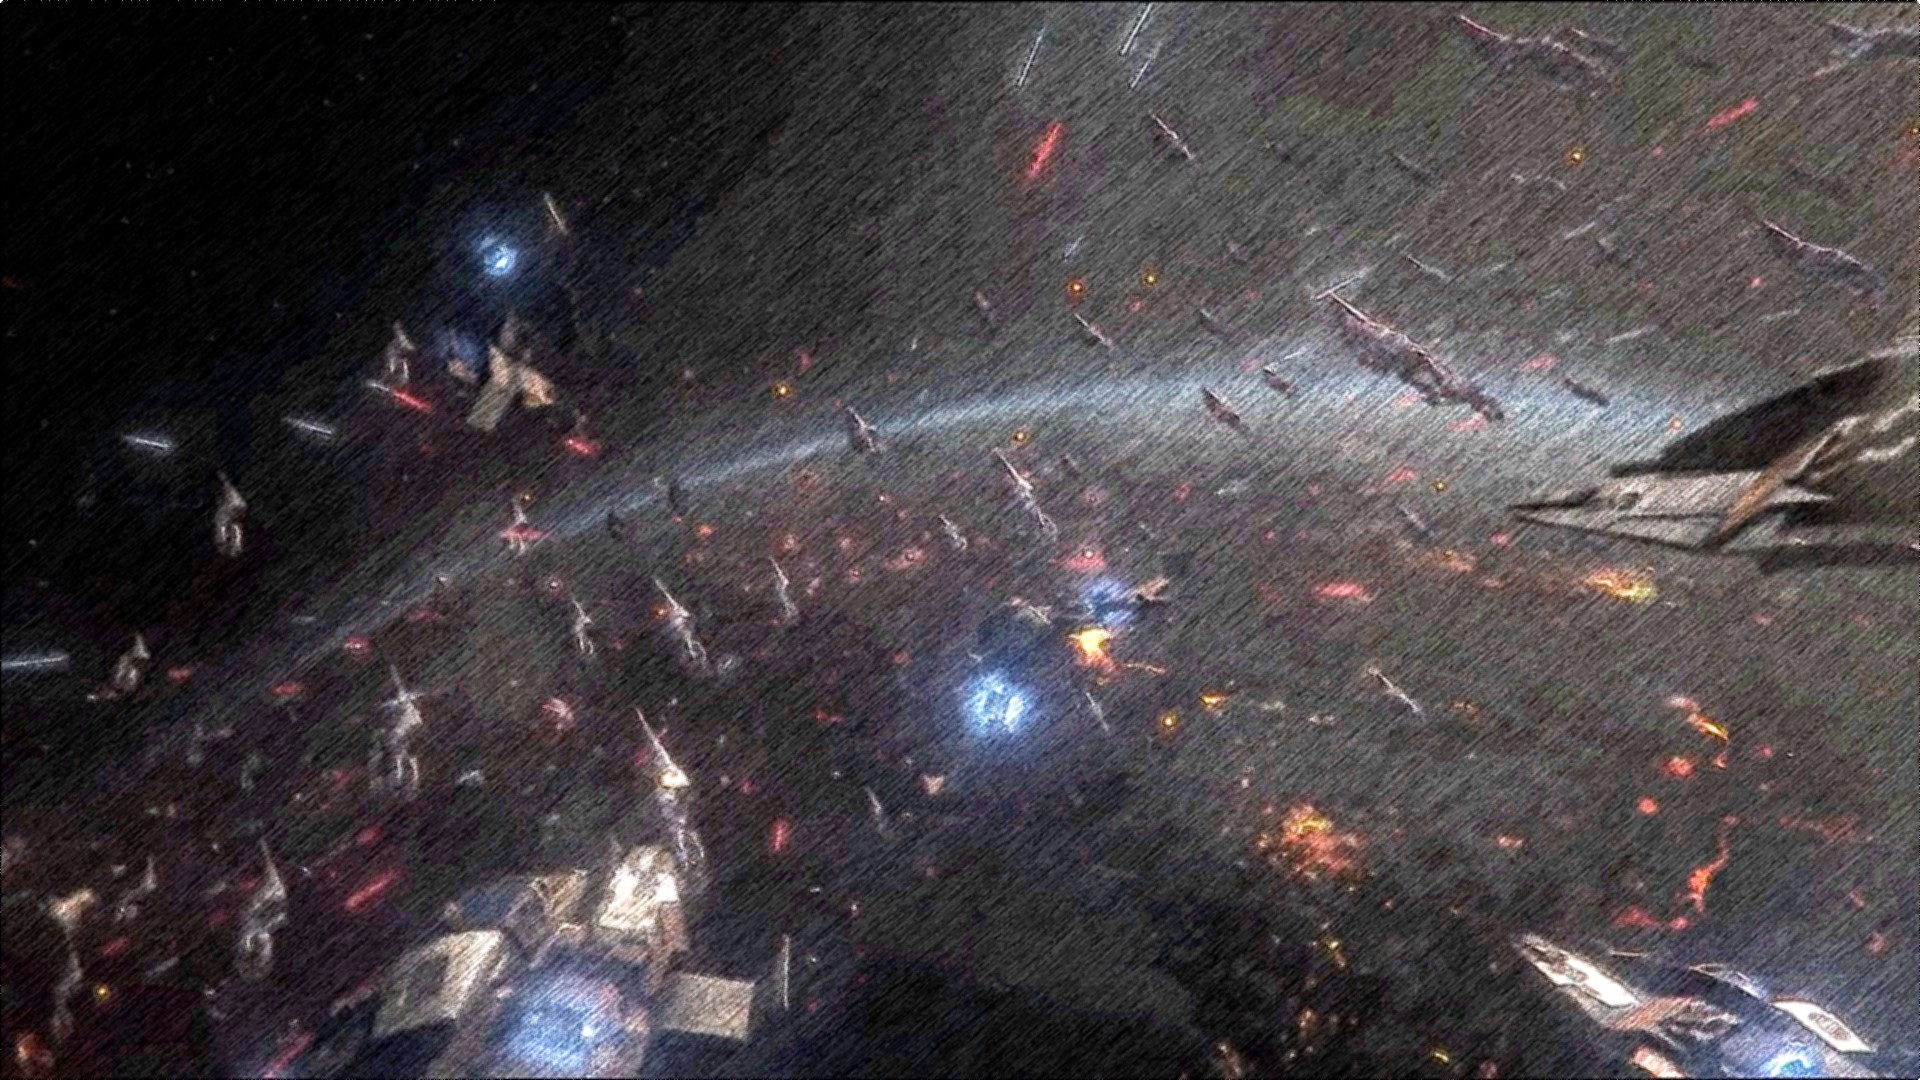 Epic star wars battle scene